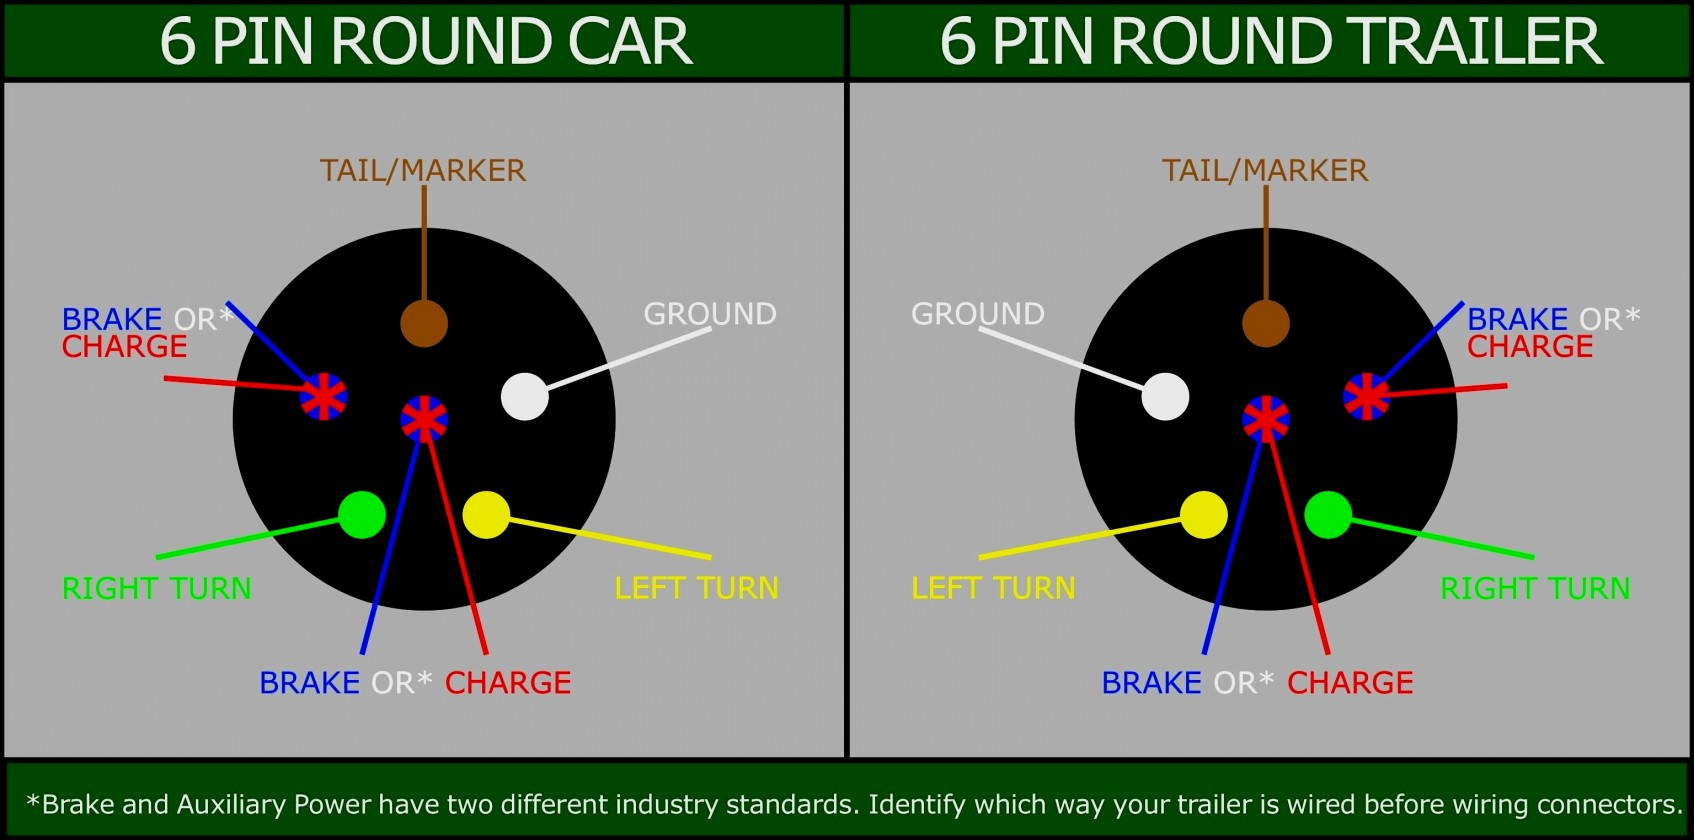 6 Round Trailer Plug Wiring Diagram - Today Wiring Diagram - Trailer Wiring Diagram 4 Pin Round